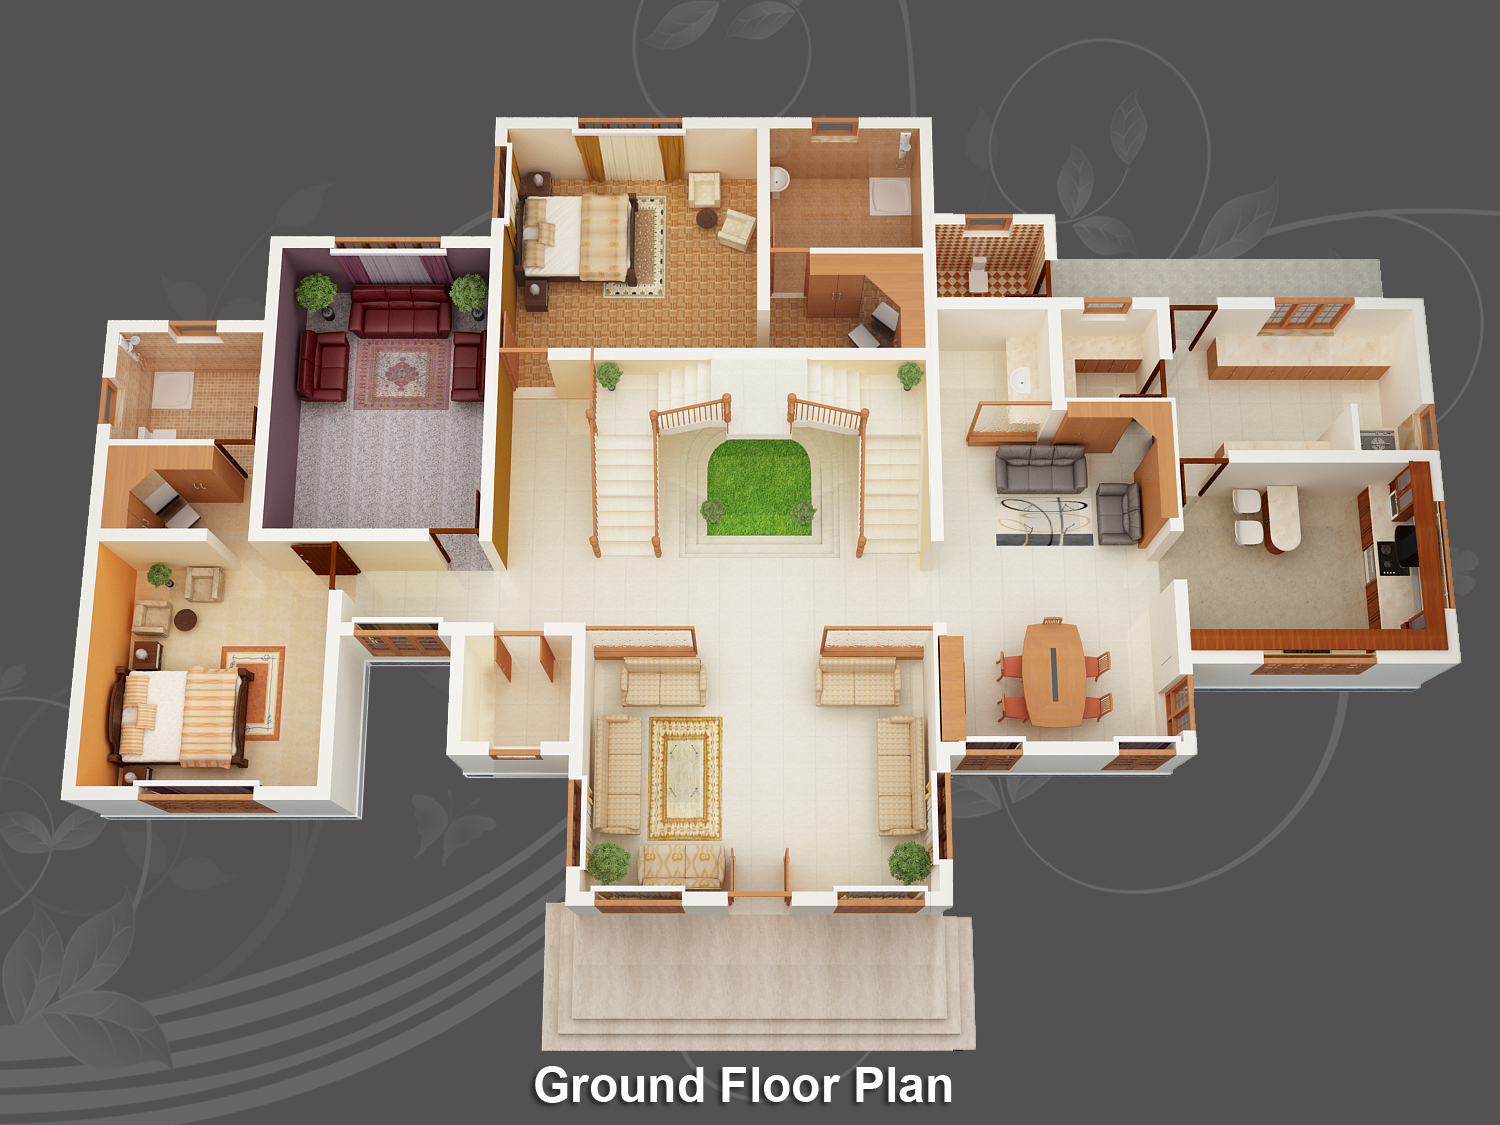 Evens construction pvt ltd 3d house plan 20 05 2011 3d home design